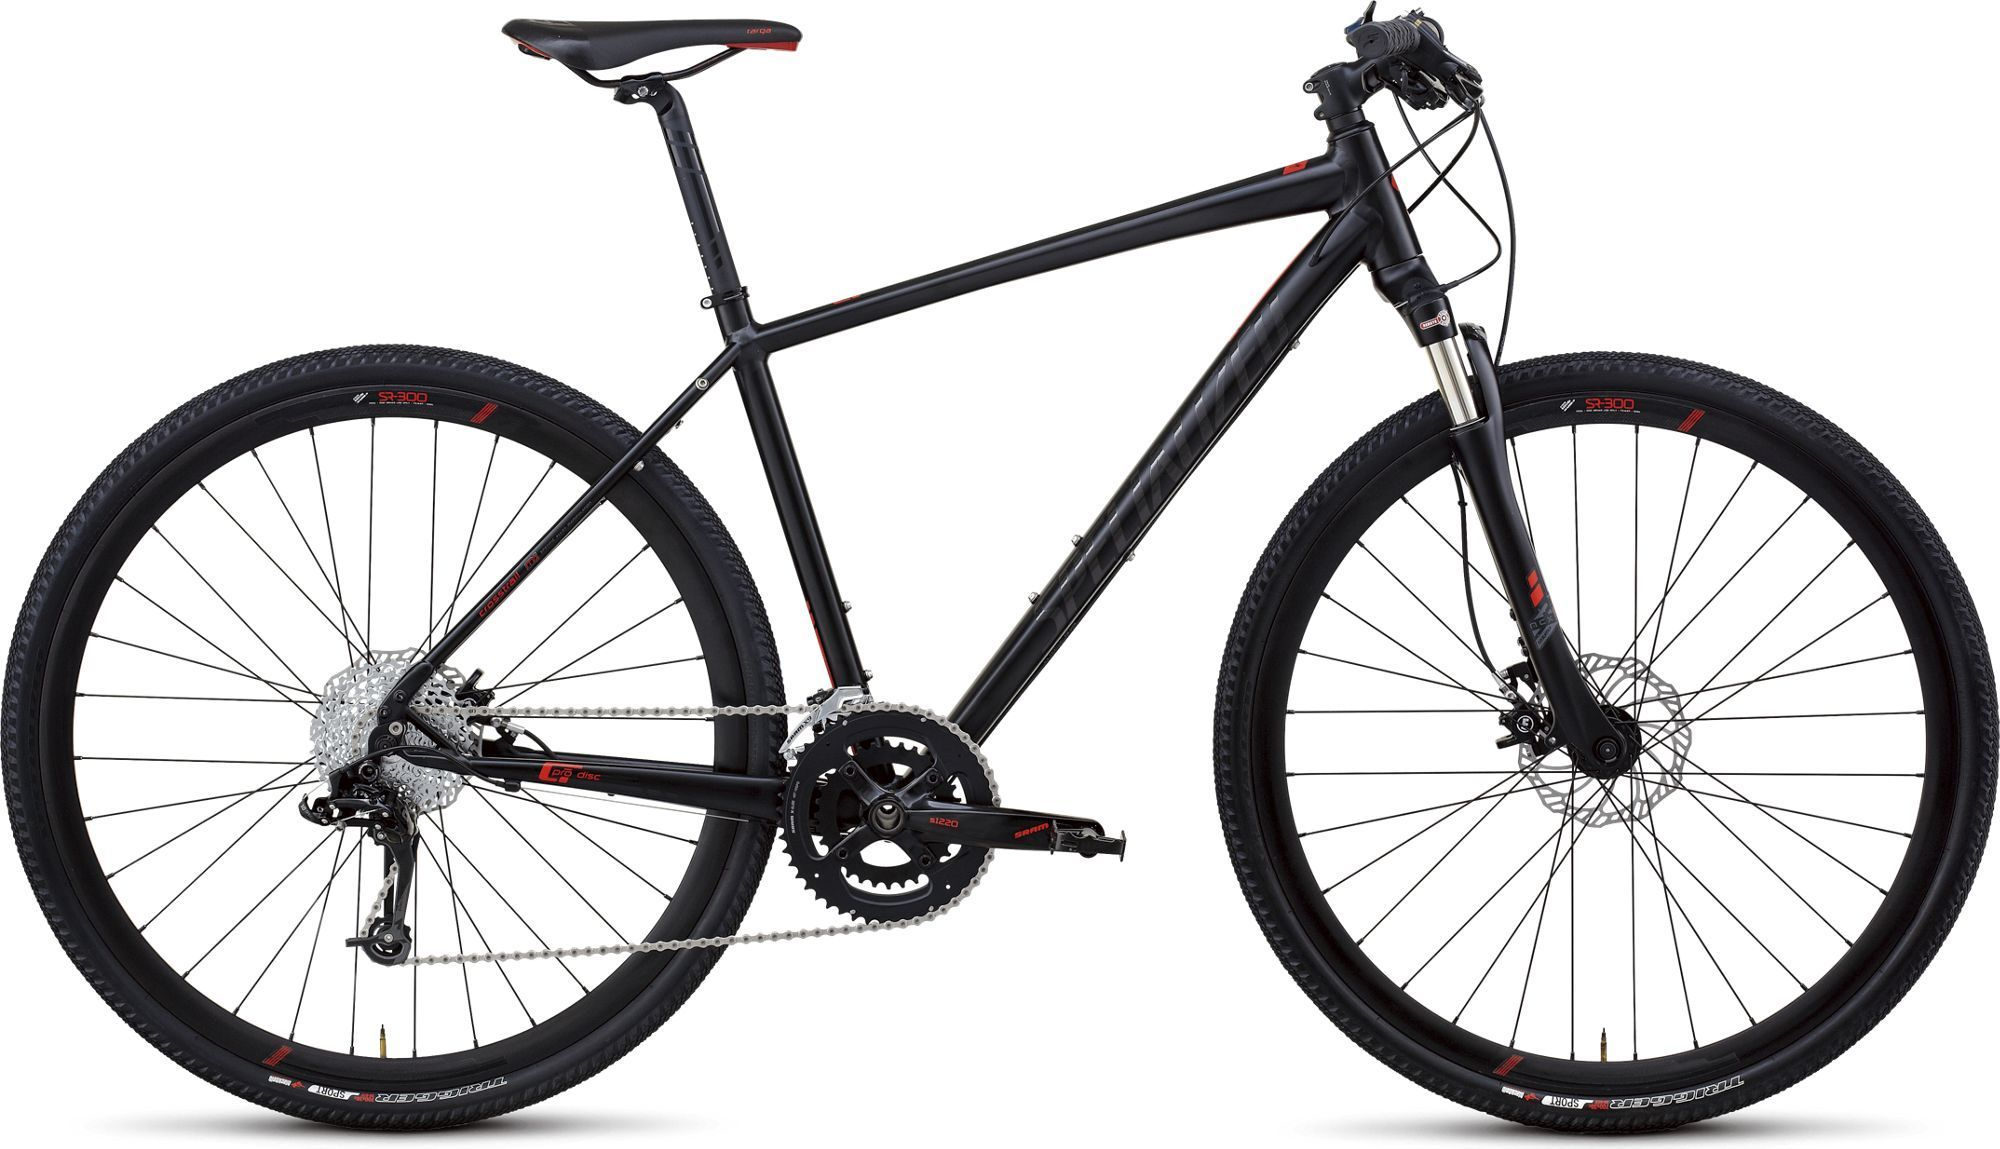 Specialized Crosstrail Pro Disc 2013 Review The Bike List